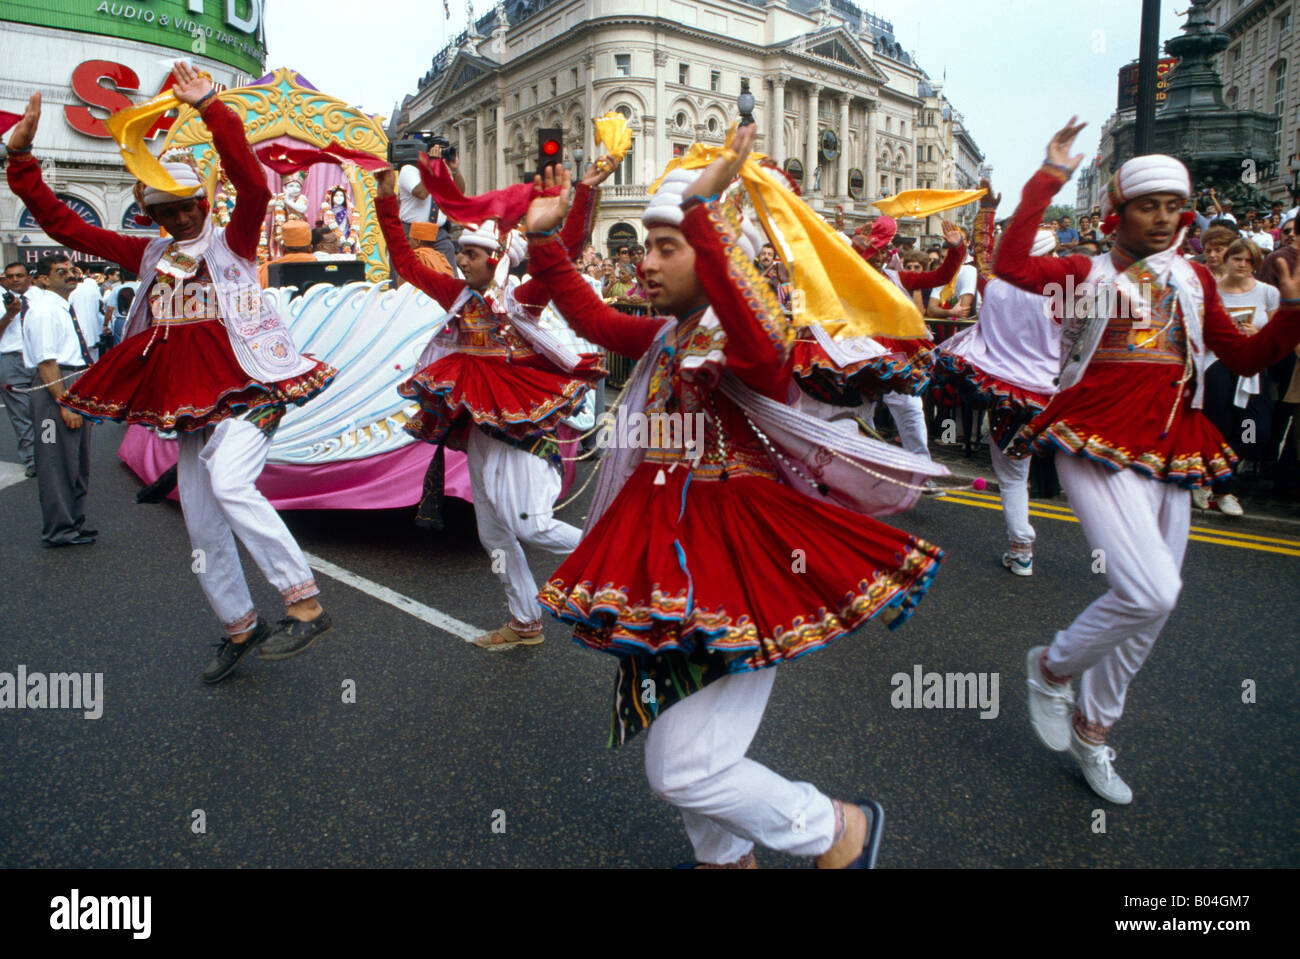 Parade hindoue Londres People Dancing Photo Stock